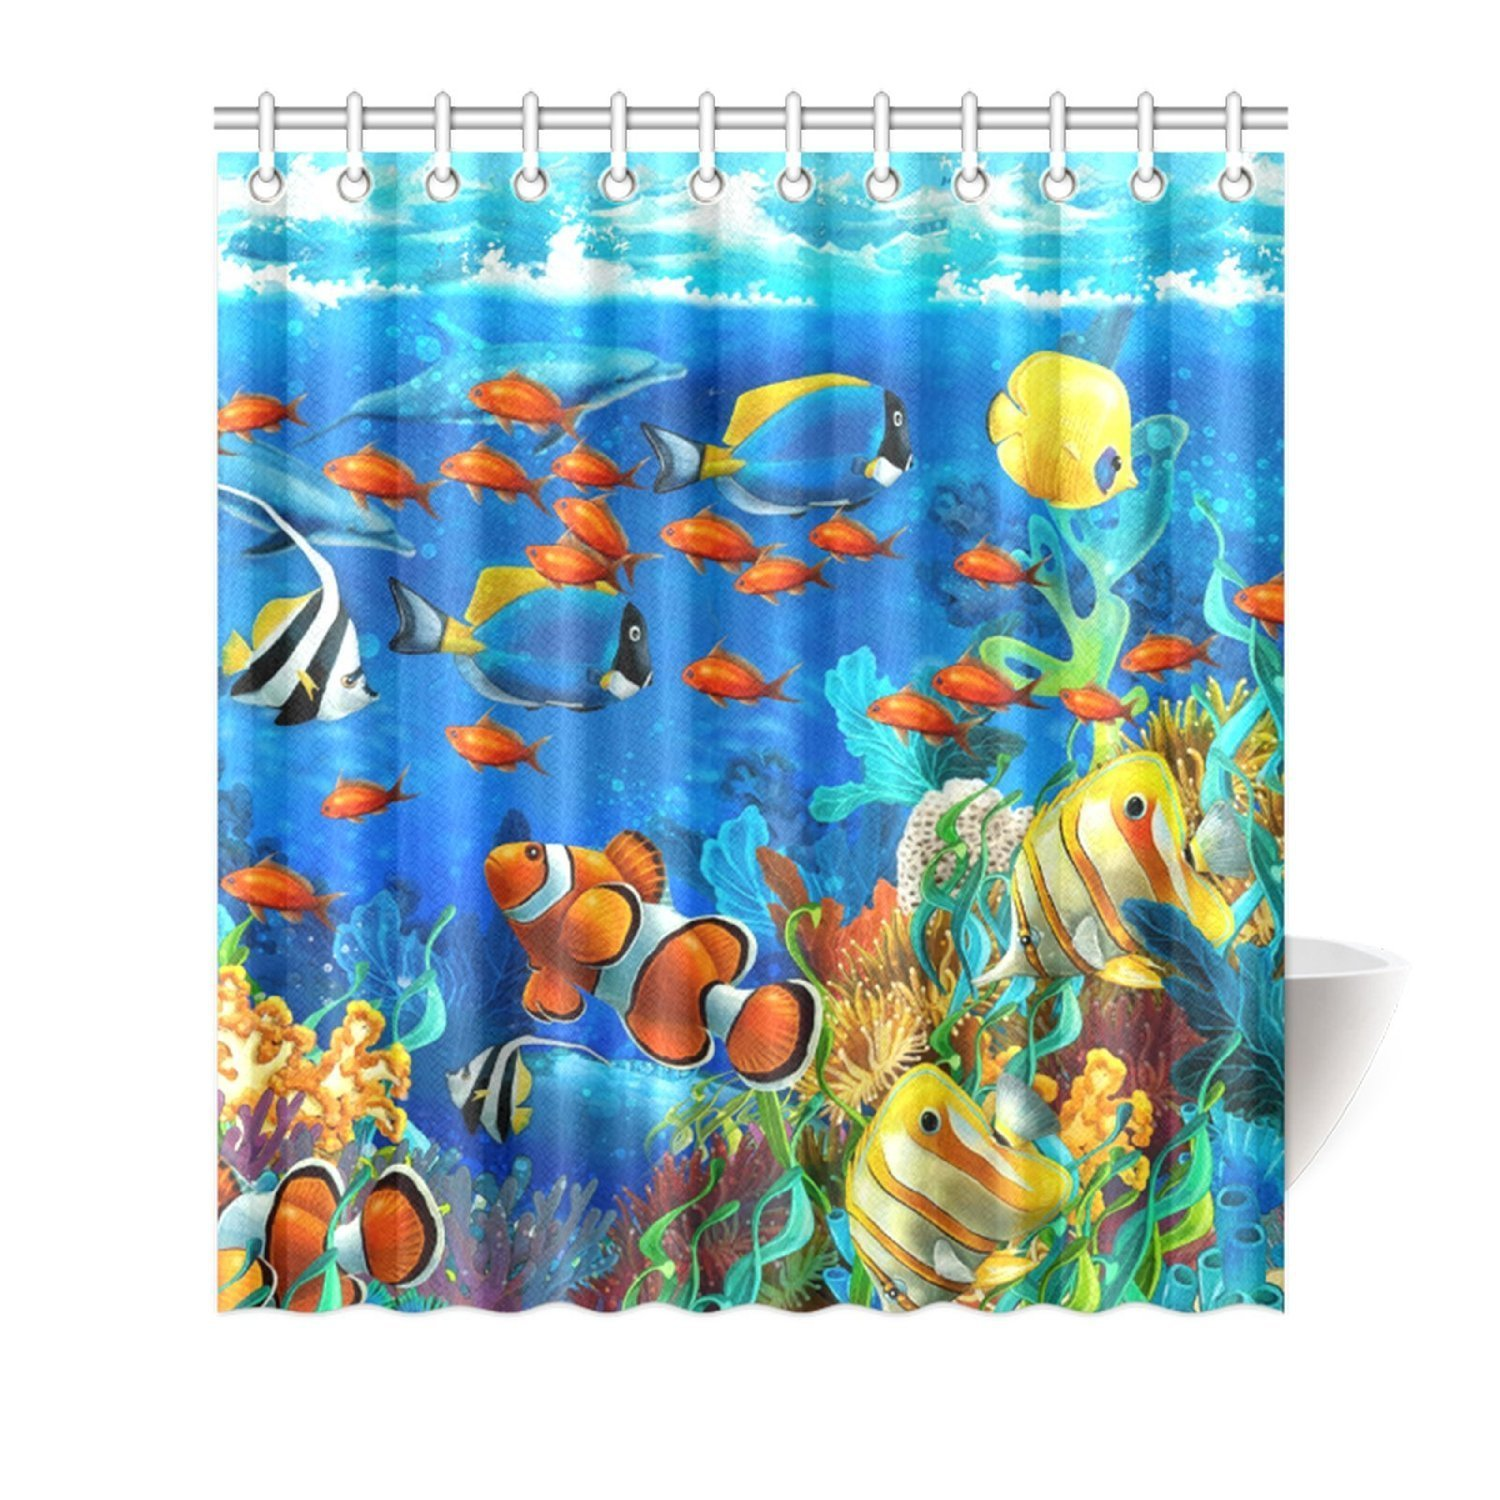 Online get cheap tropical fish fabric shower curtain for Tropical fish shower curtain